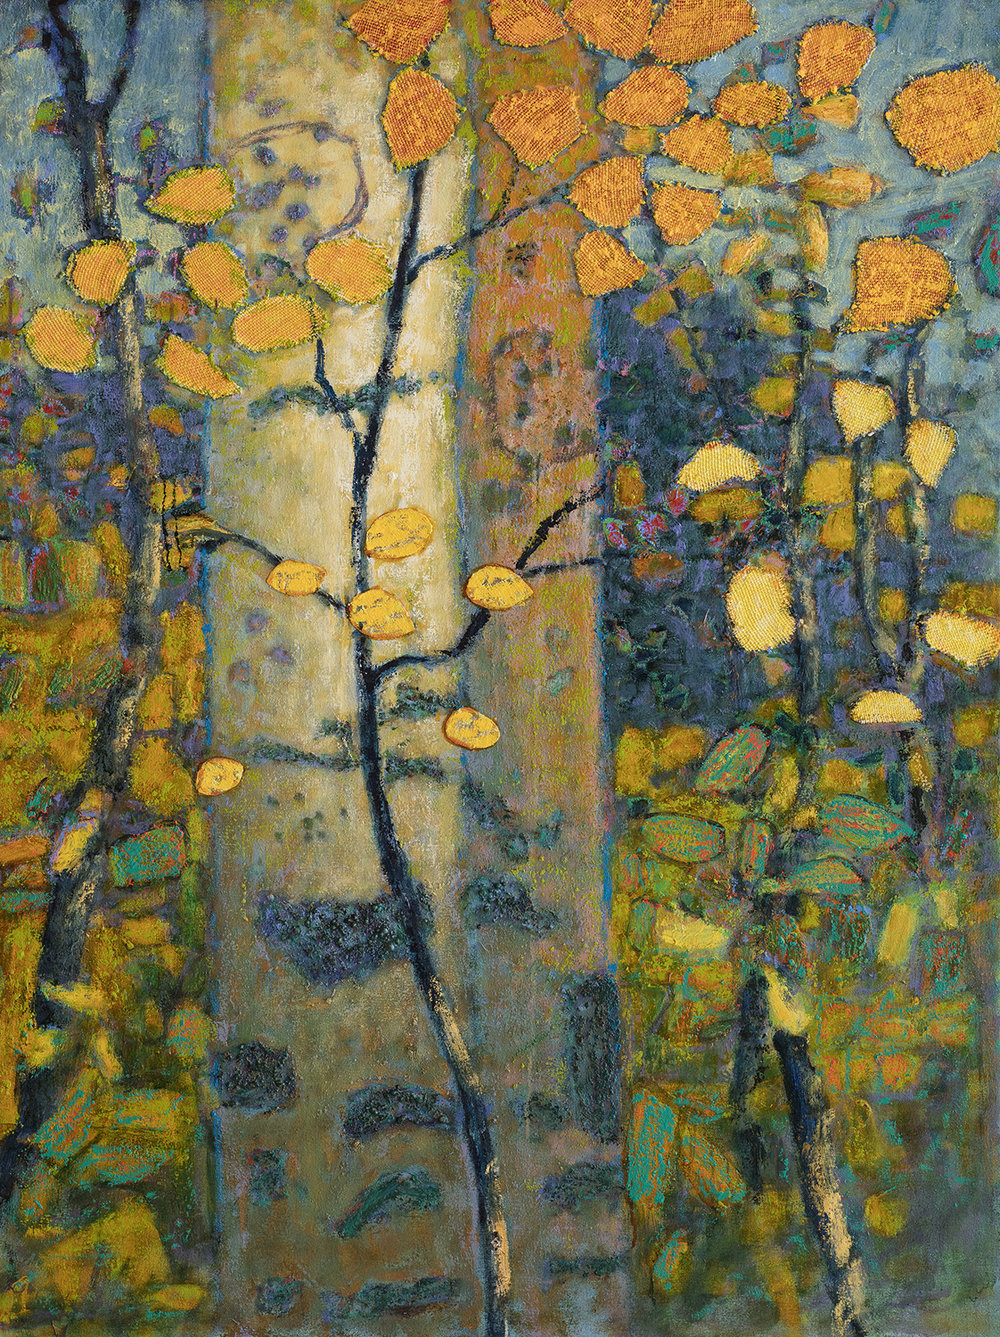 Exuberance | oil on canvas | 48 x 36"